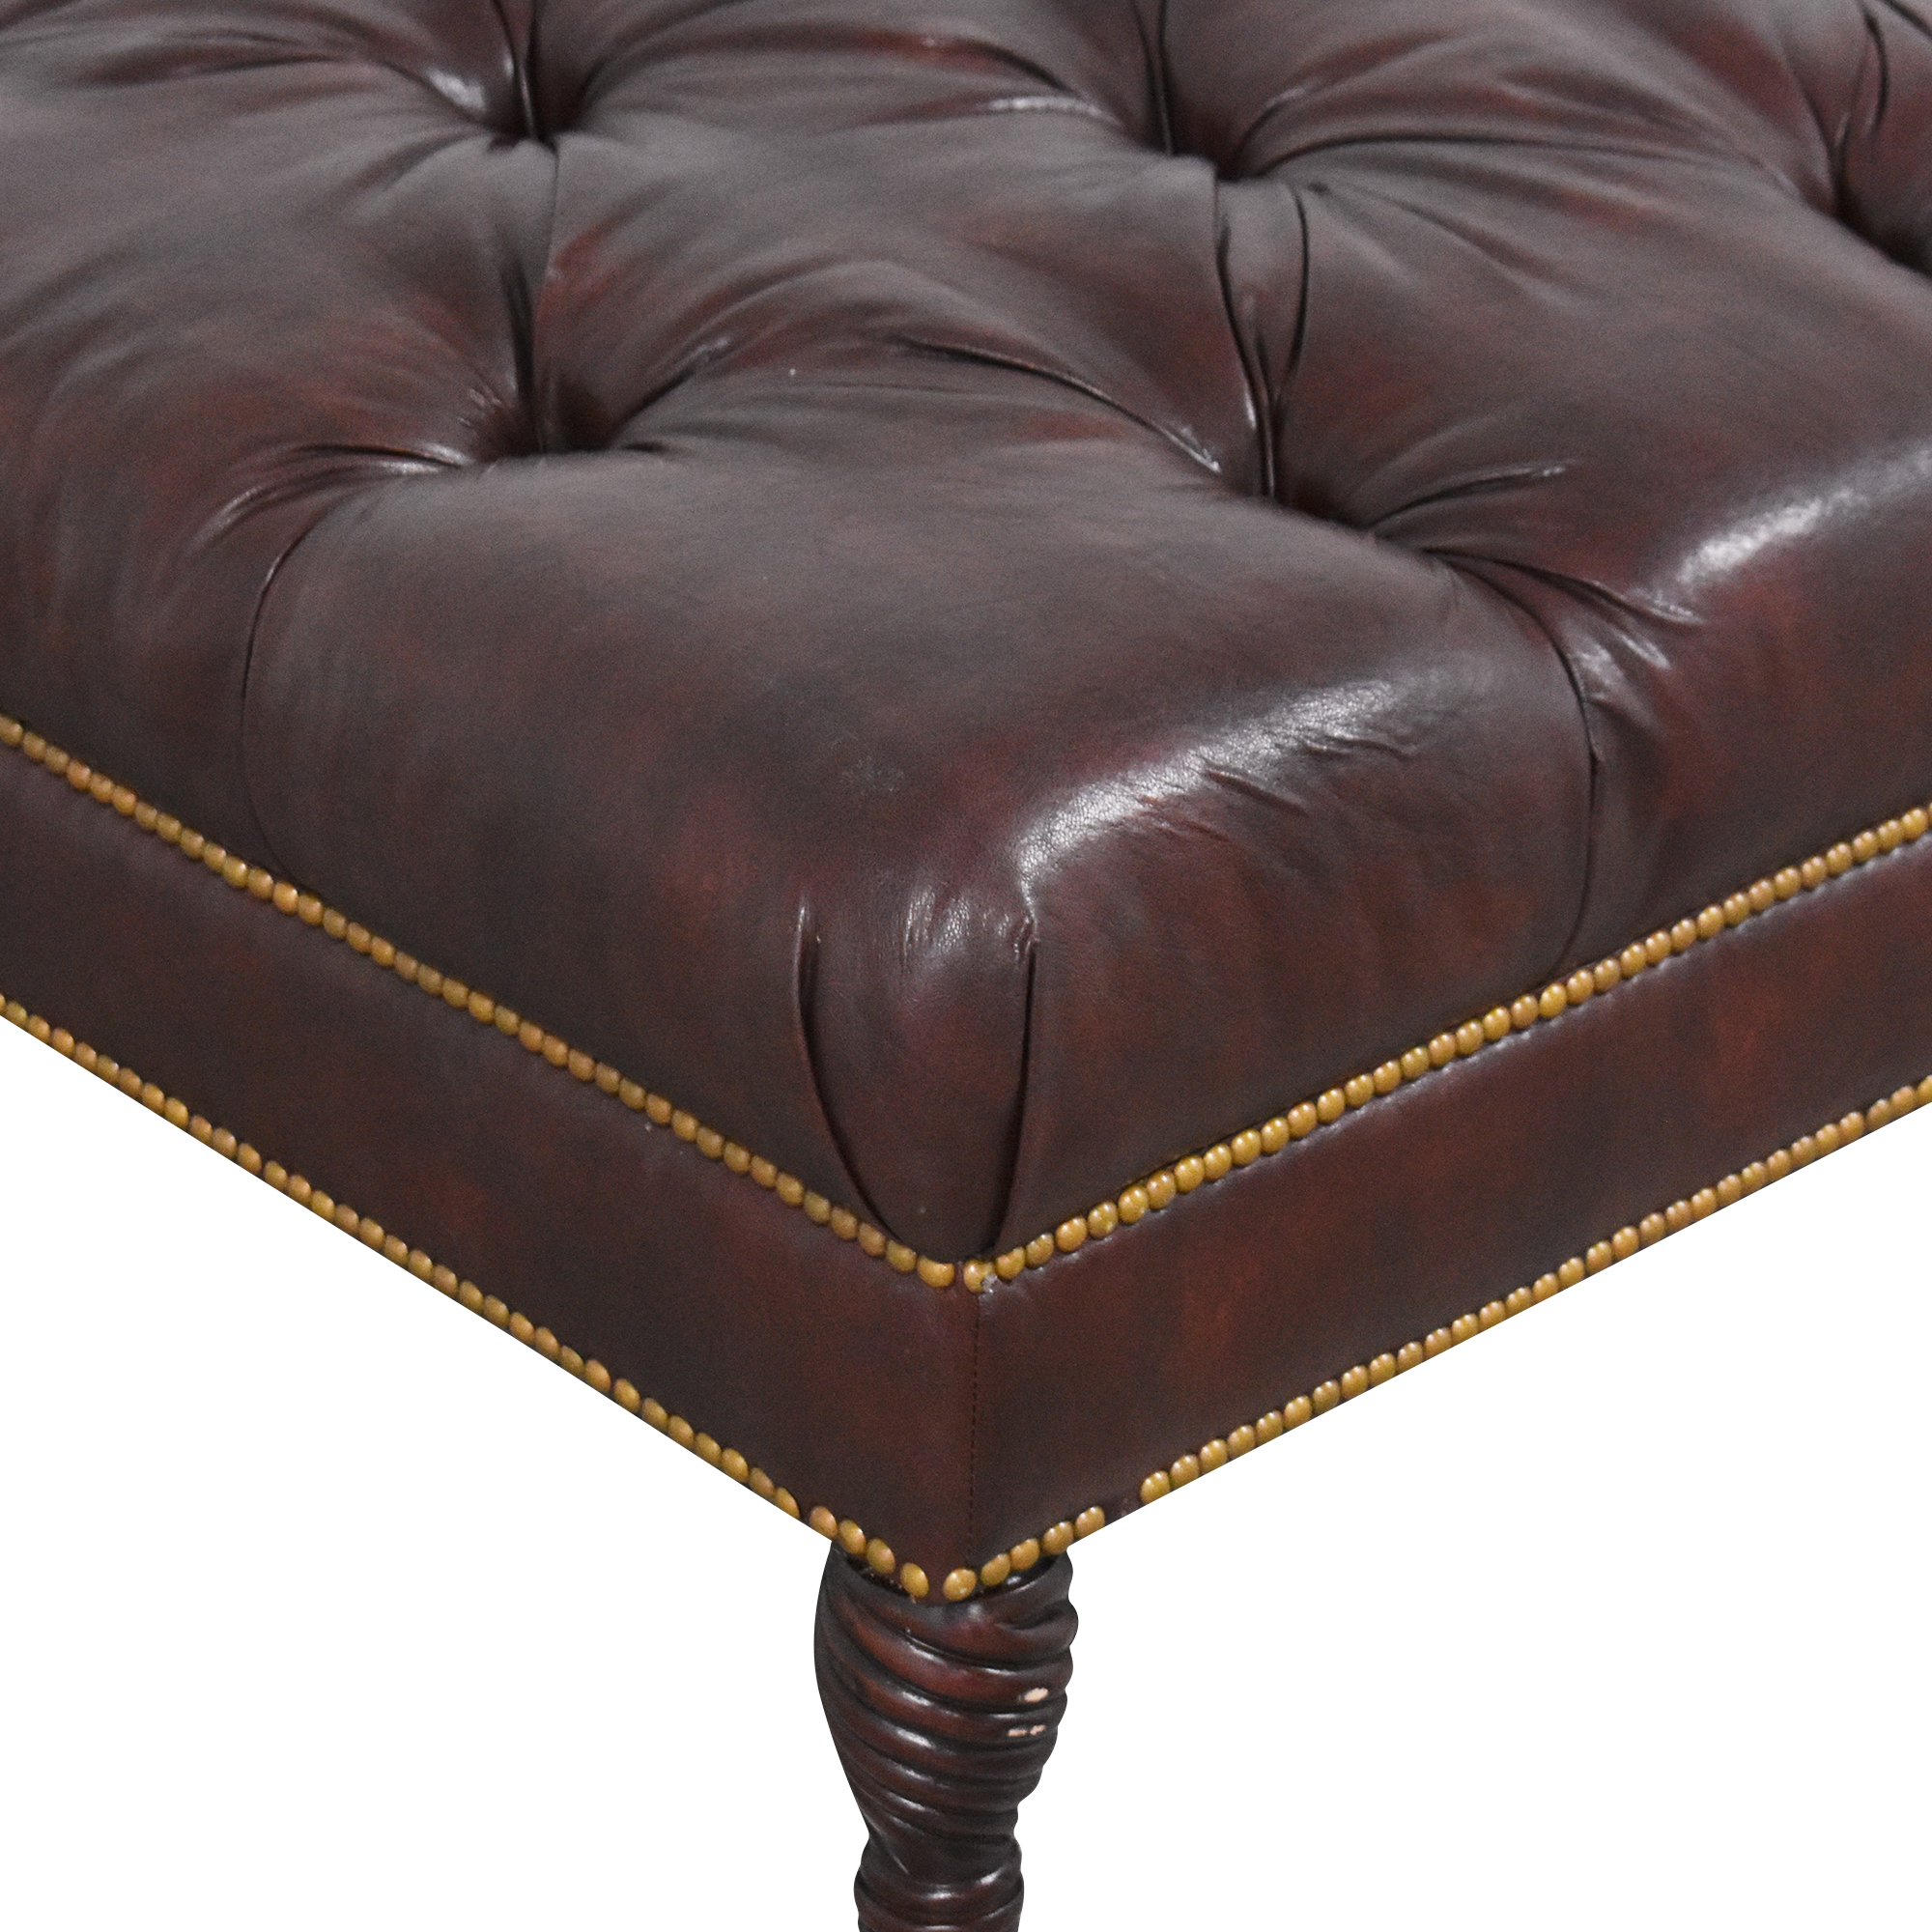 buy Large Tufted Ottoman on Casters